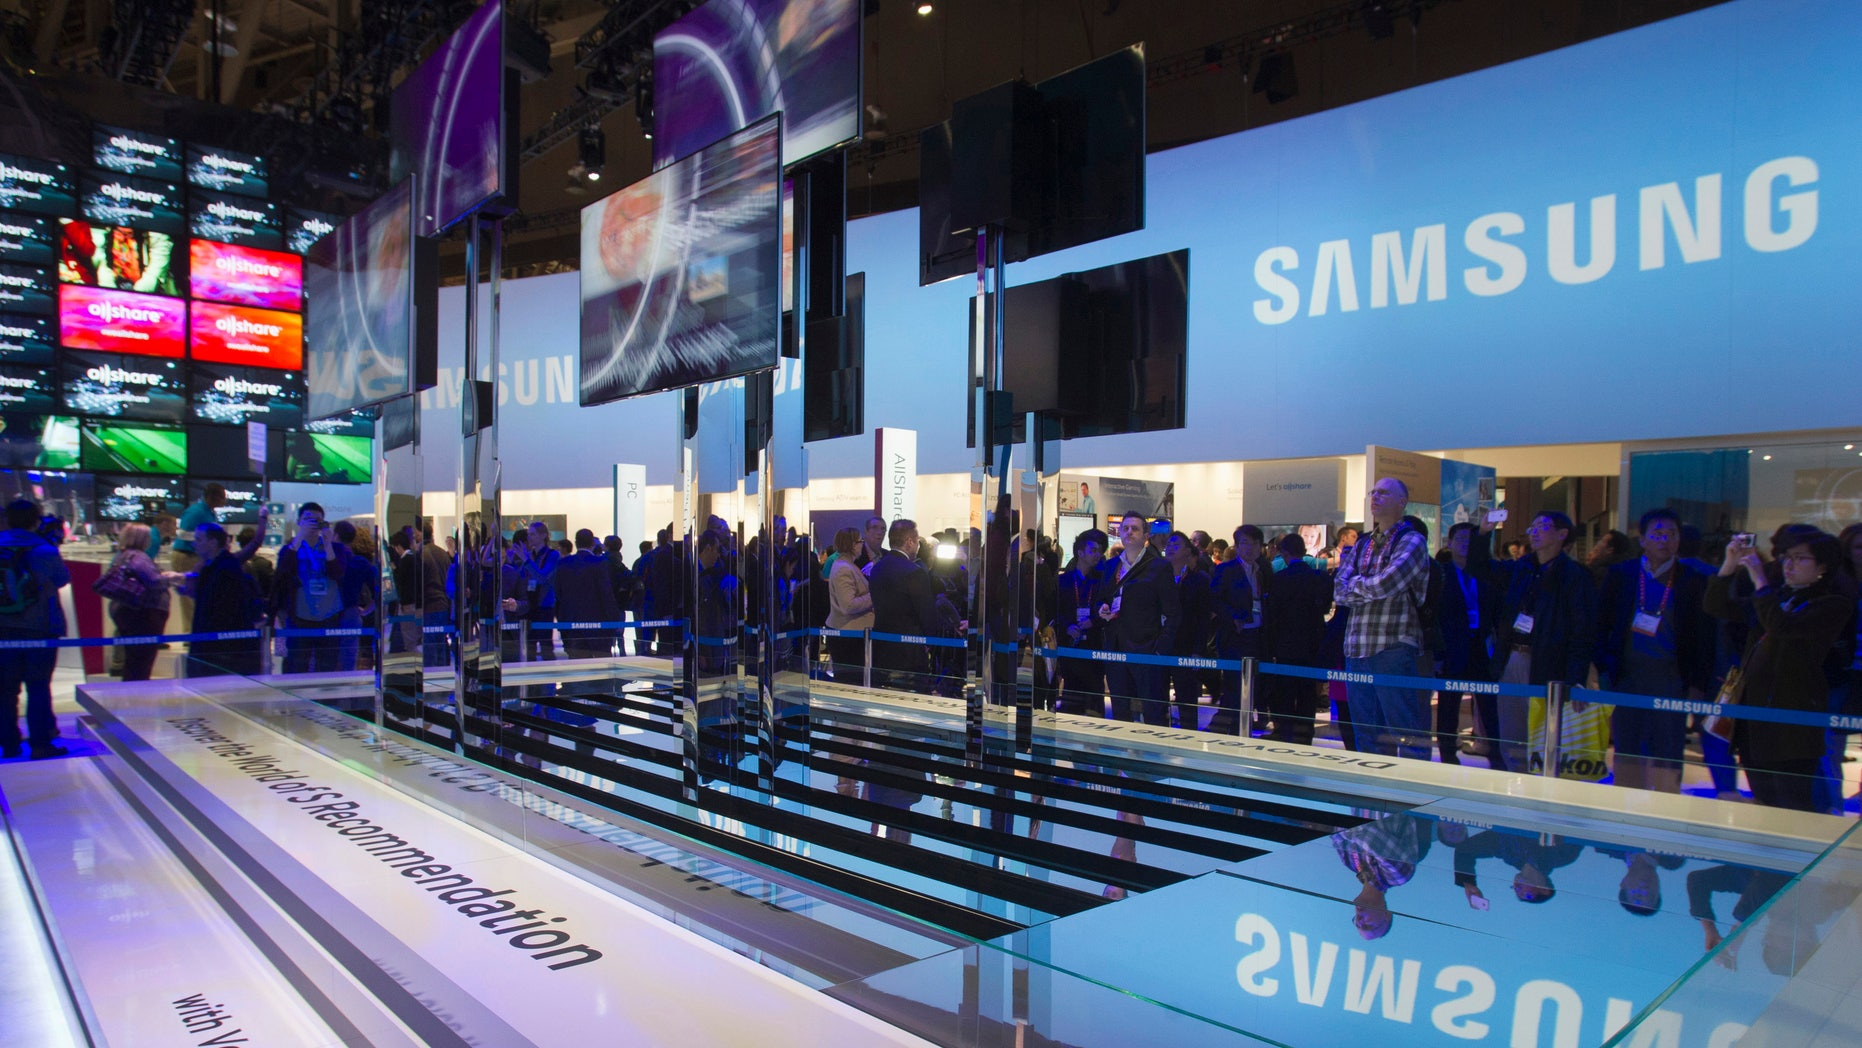 File photo - Showgoers watch a display of Samsung Smart TVs during the first day of the Consumer Electronics Show (CES) in Las Vegas Jan. 8, 2013.